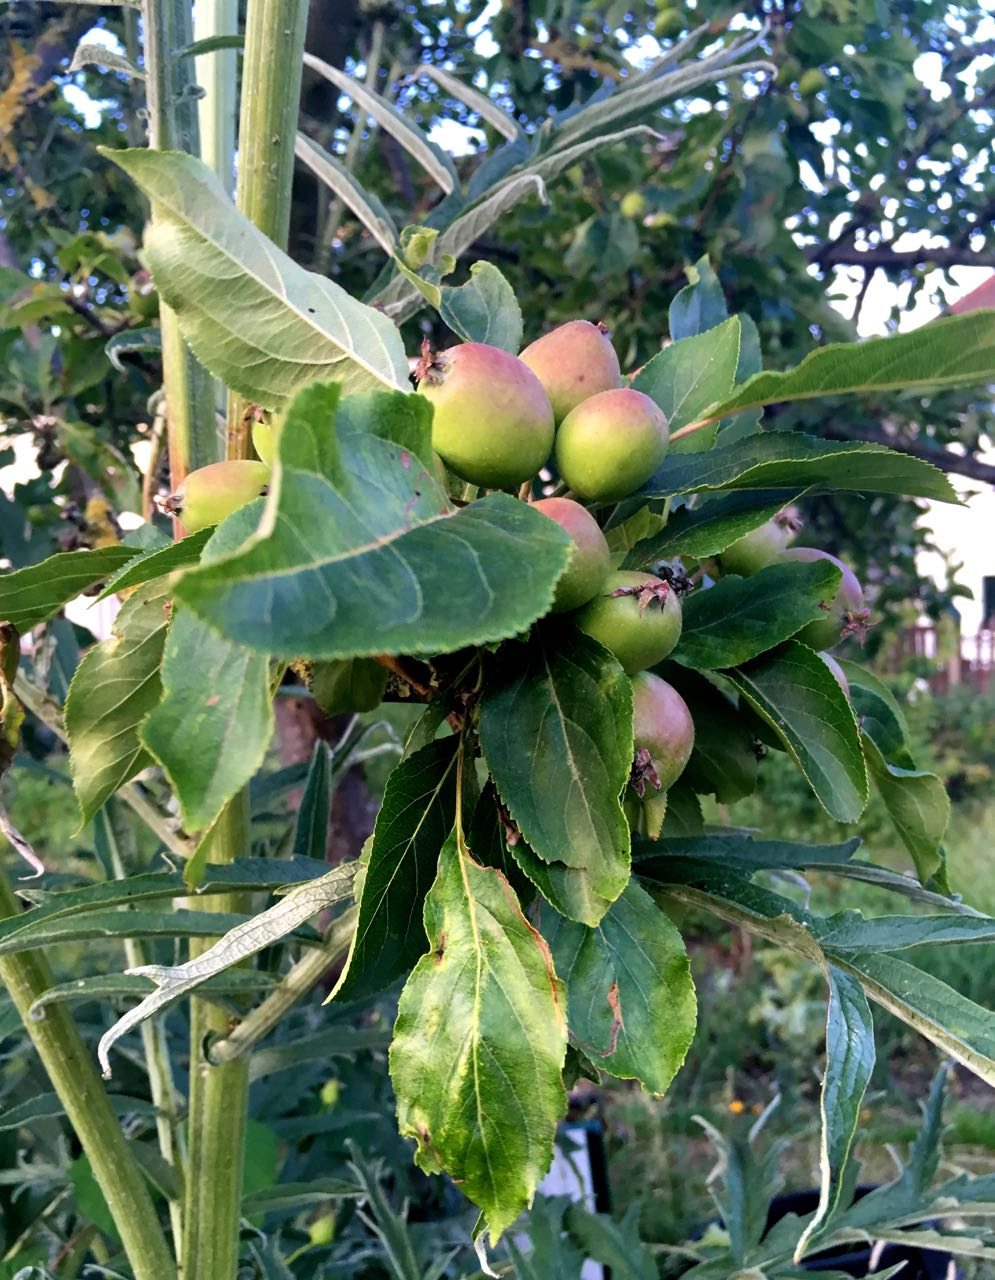 crab apples with artichokes towering above these